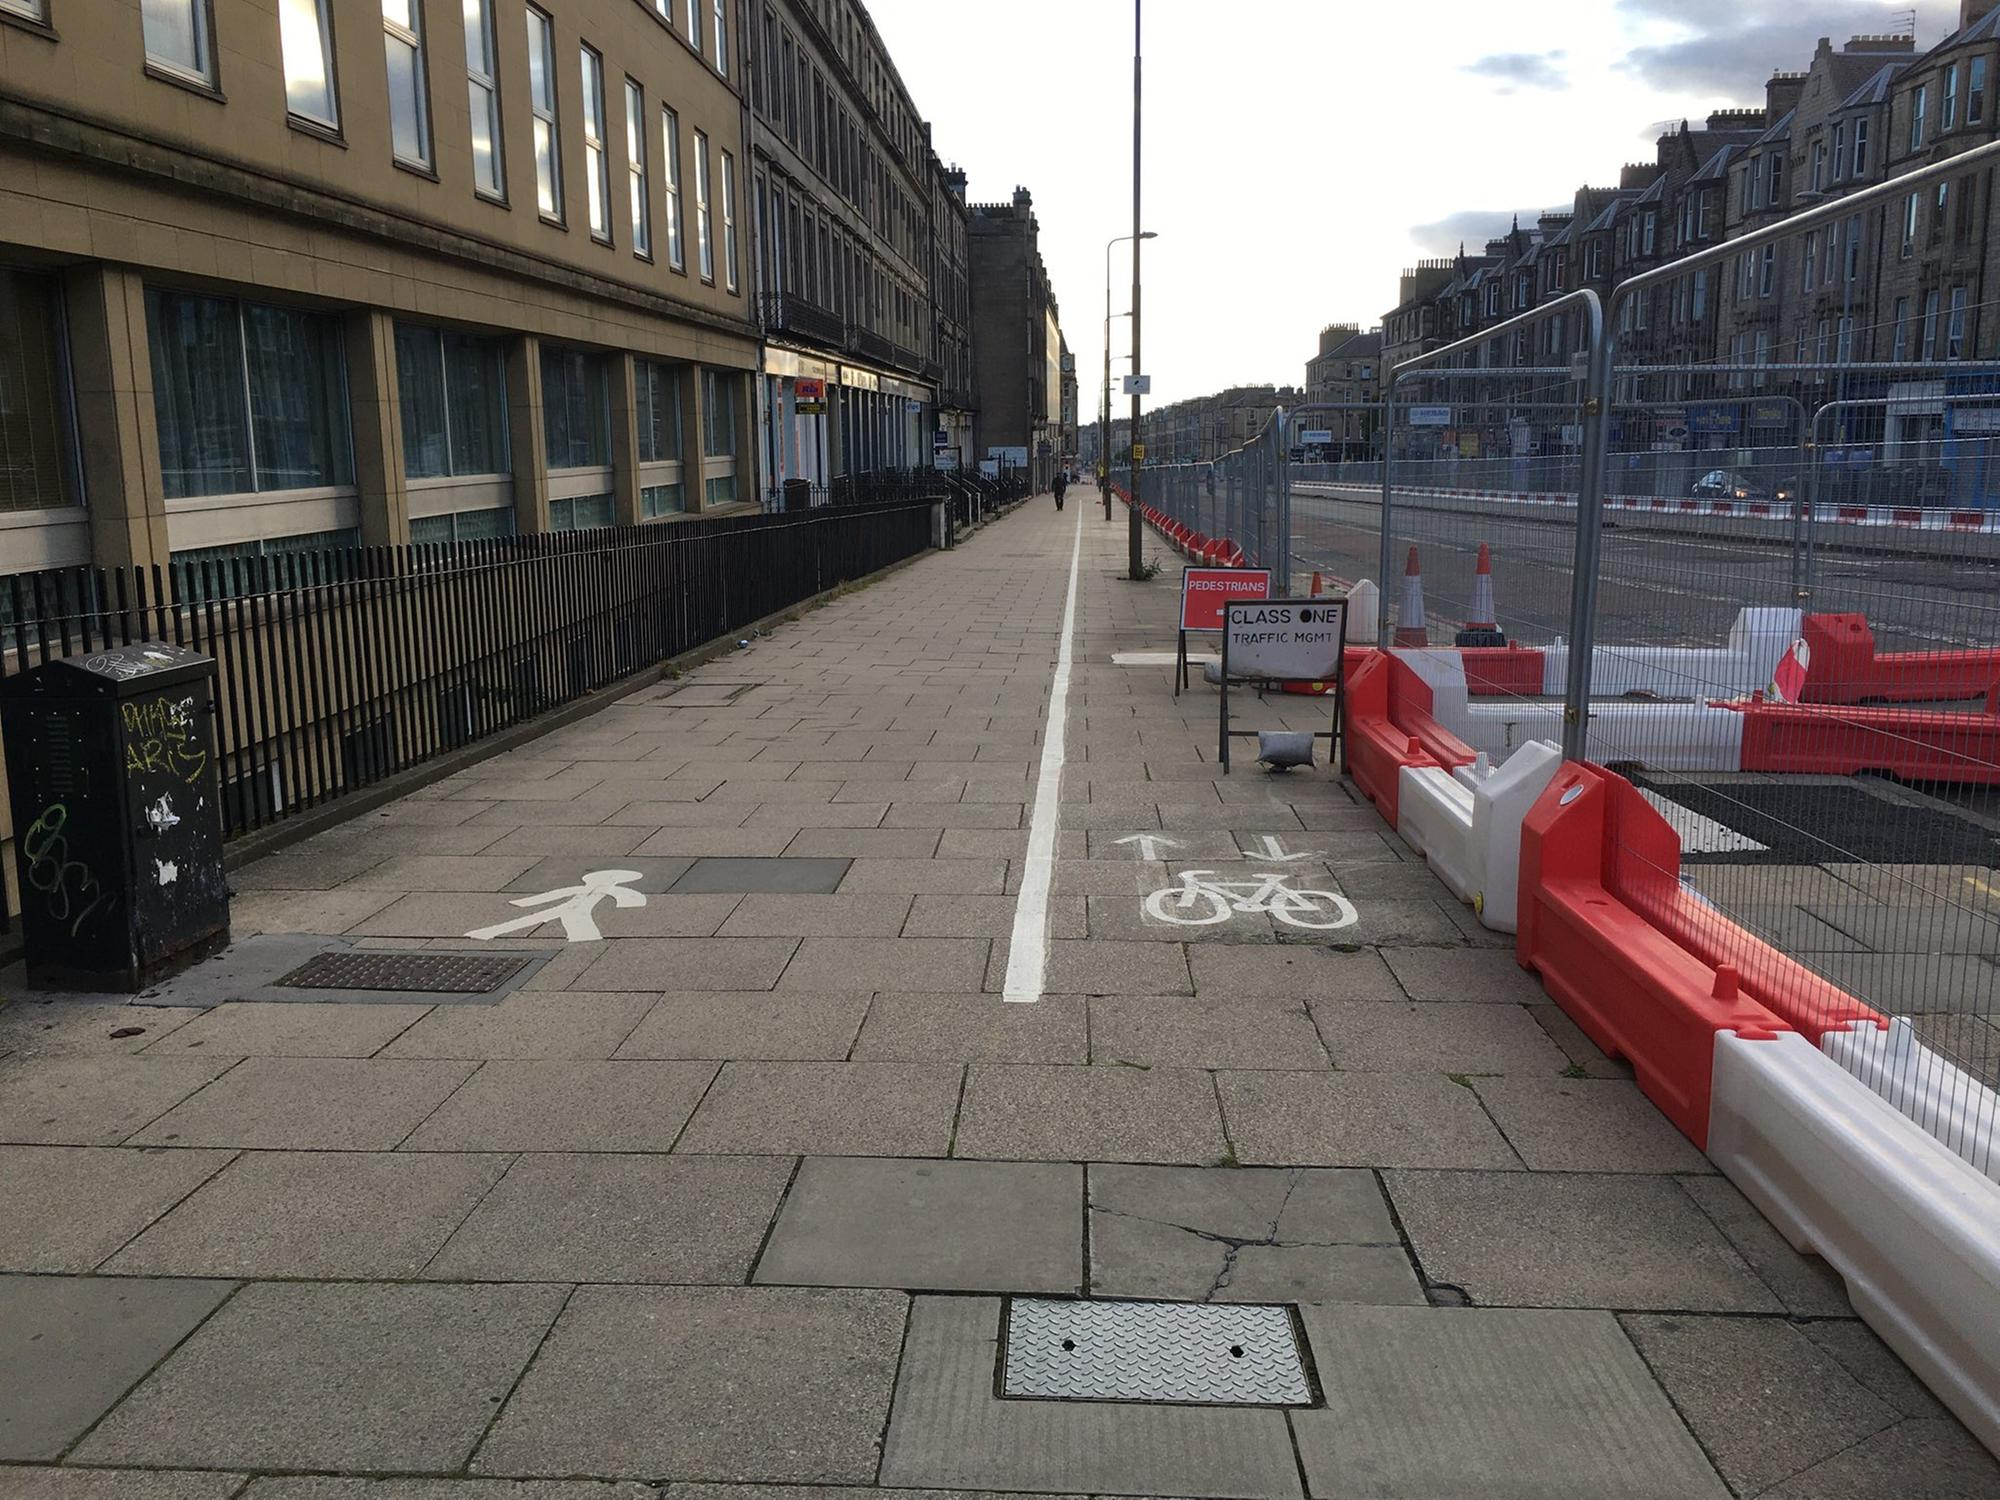 'That's ridiculous': Edinburgh reacts to lamposts in the middle of Leith Walk cycle lanes